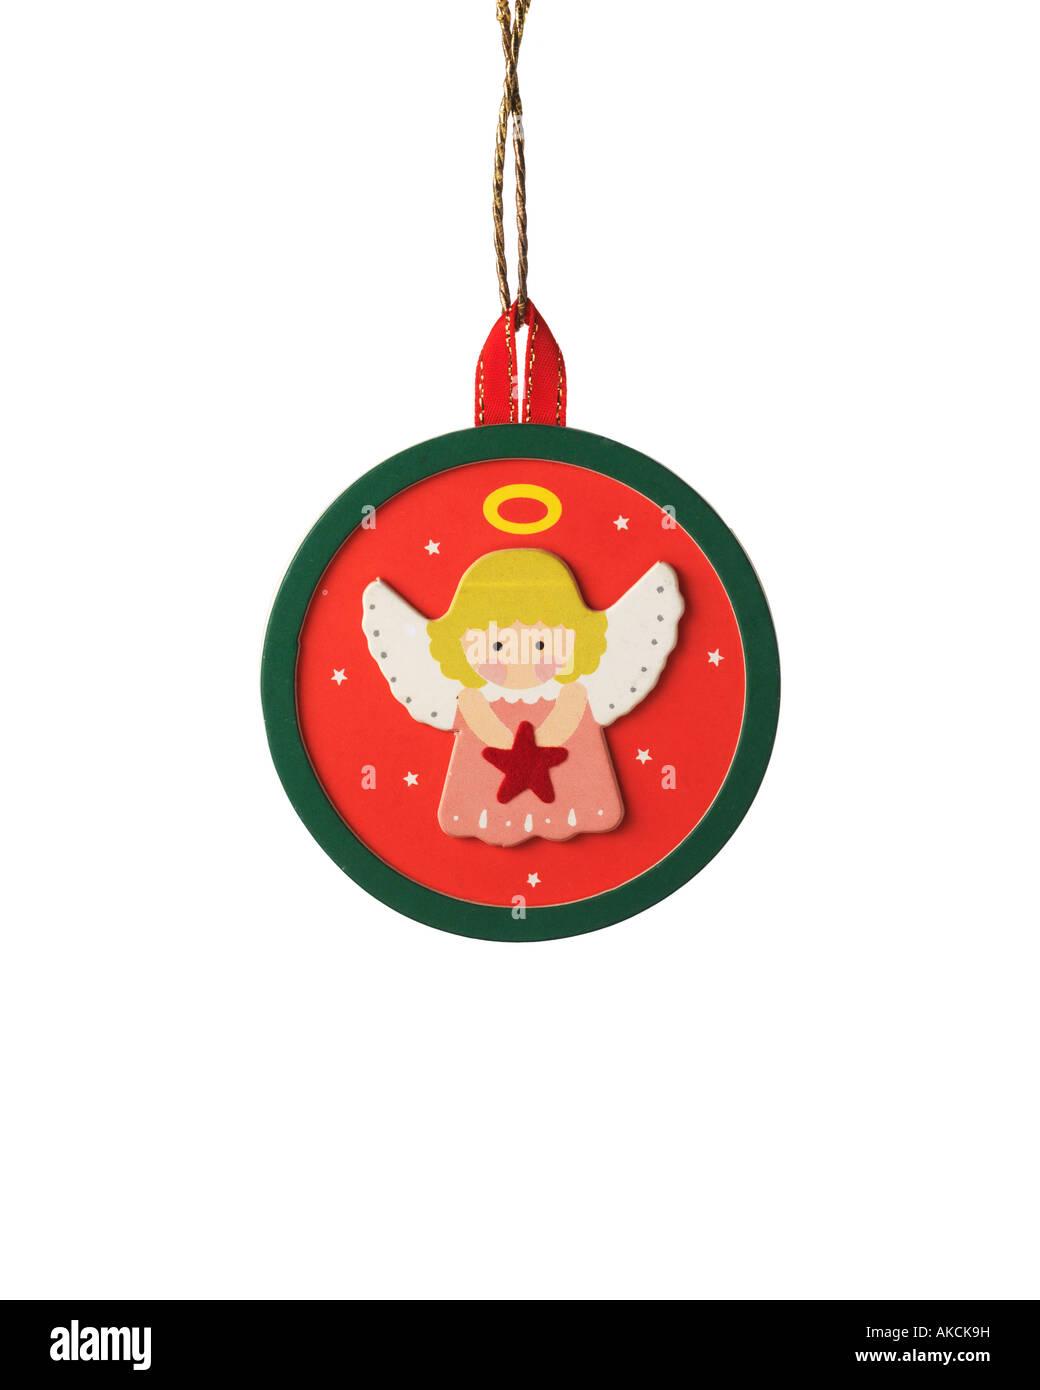 Halo Christmas Ornament.Vintage Christmas Ornament Decoration Of Handmade Angel With